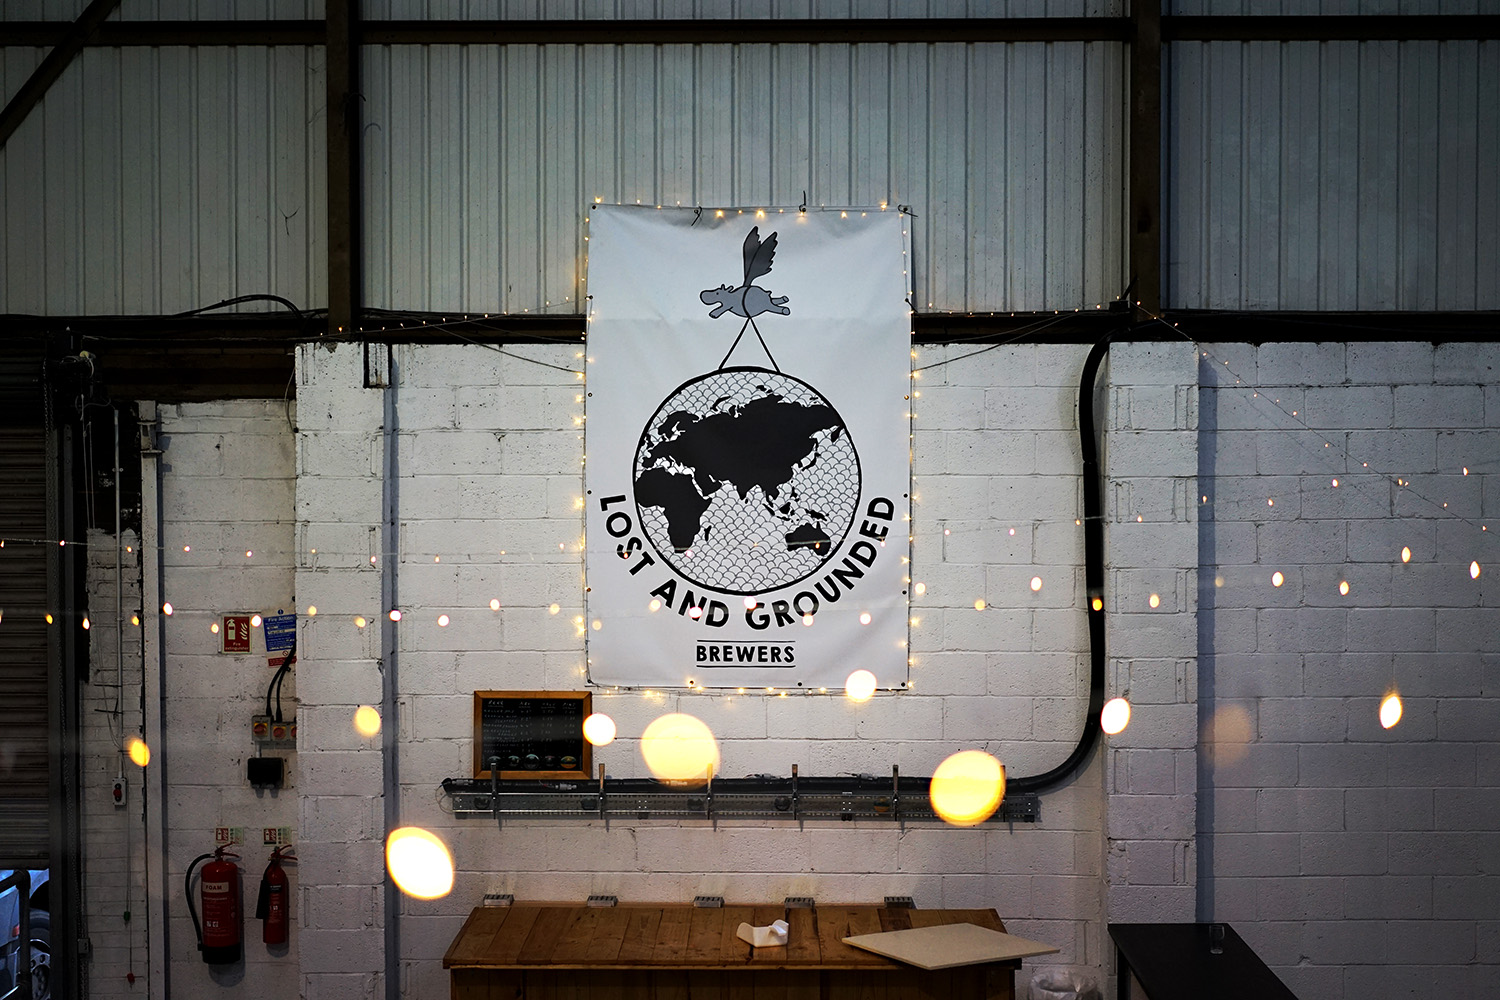 Lost+and+Grounded+Brewery+Interior+14.jpg